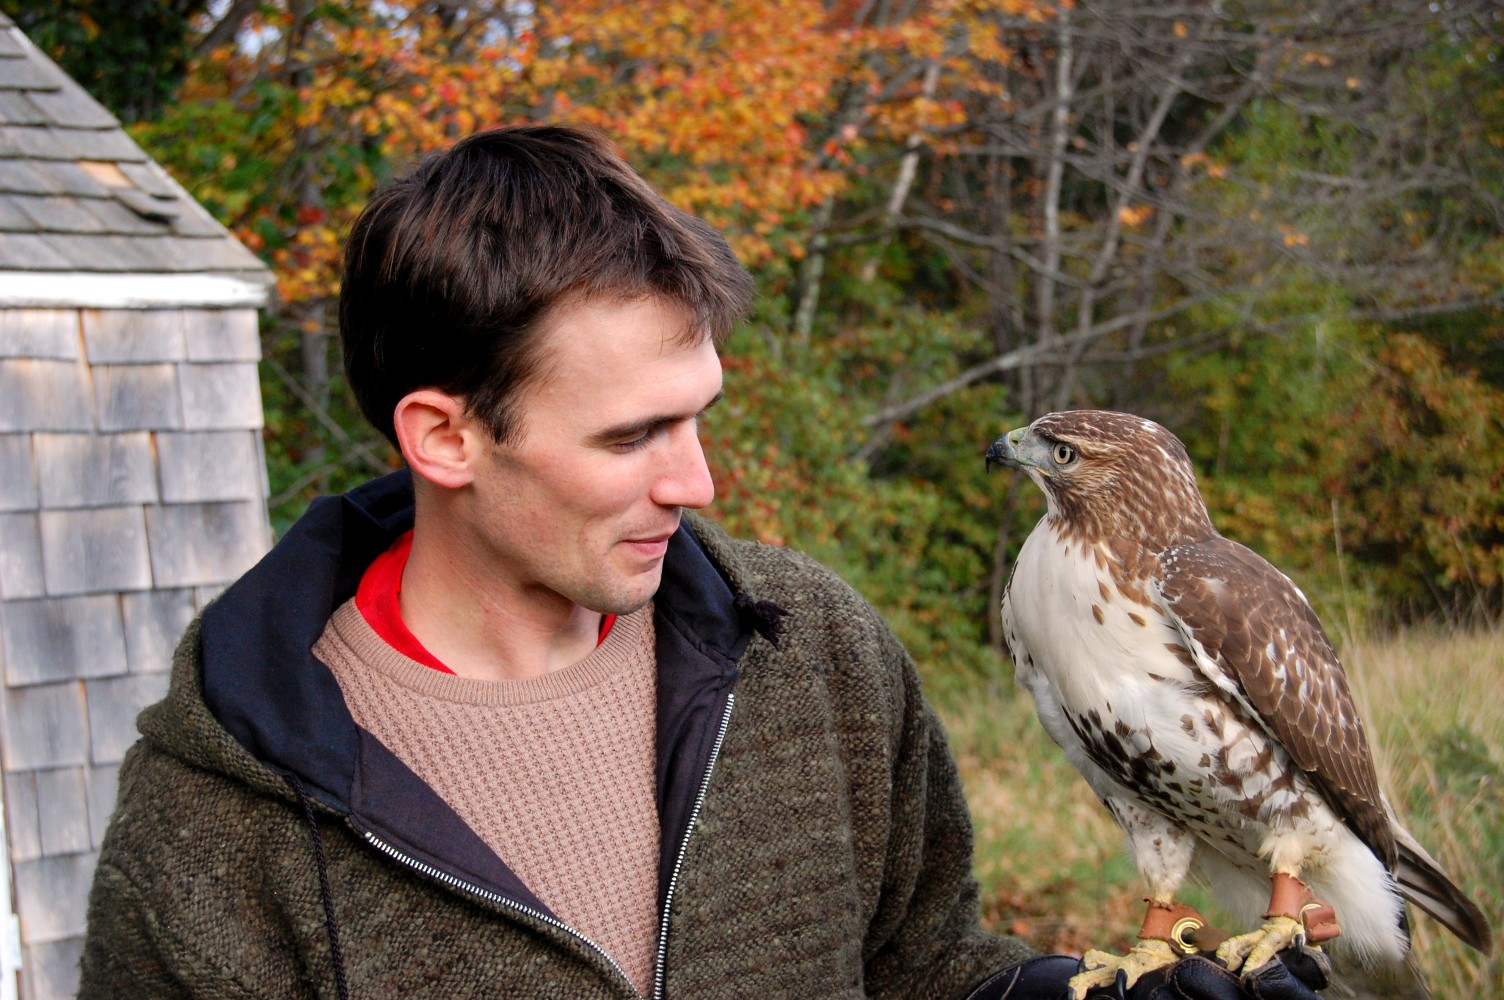 Henry and a red tail hawk, photo credit: Madeleine K. Bruce